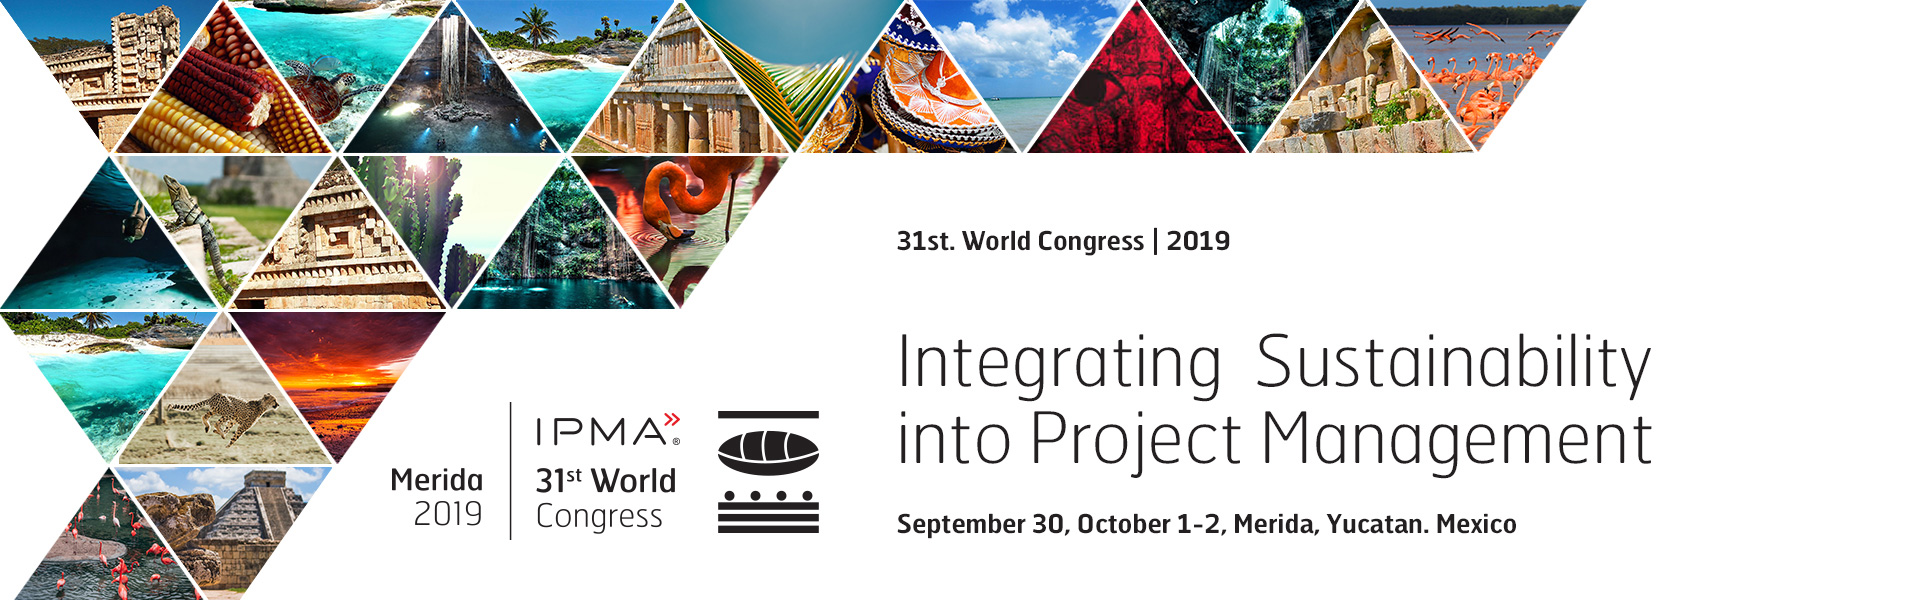 Global premiere of IPMA World Congress 2019 website